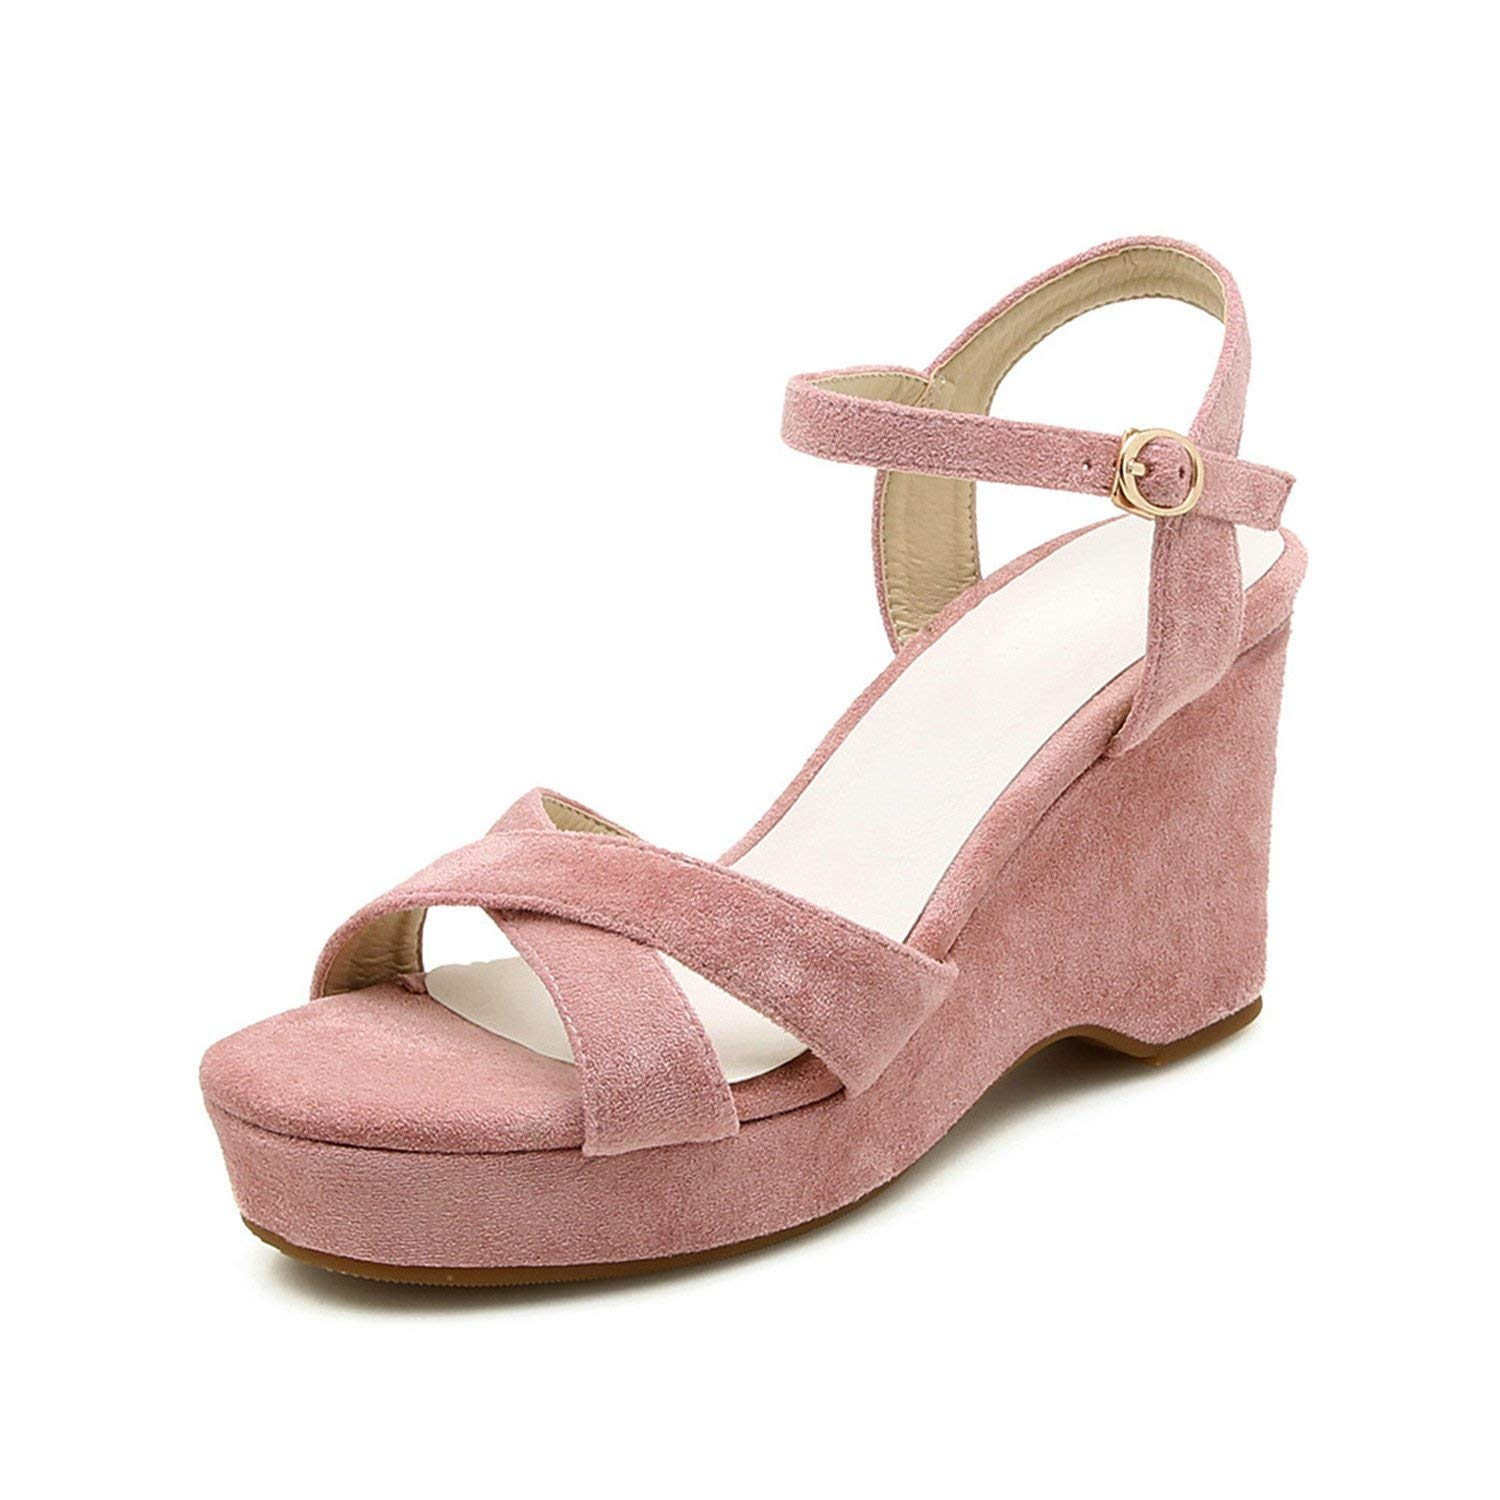 eb8a46f5274 Get Quotations · Twinkle UU Sandals 2018 Summer Flock Wedge High Heels  Ankle Buckle Strap Platform Sandal Shoes Casual